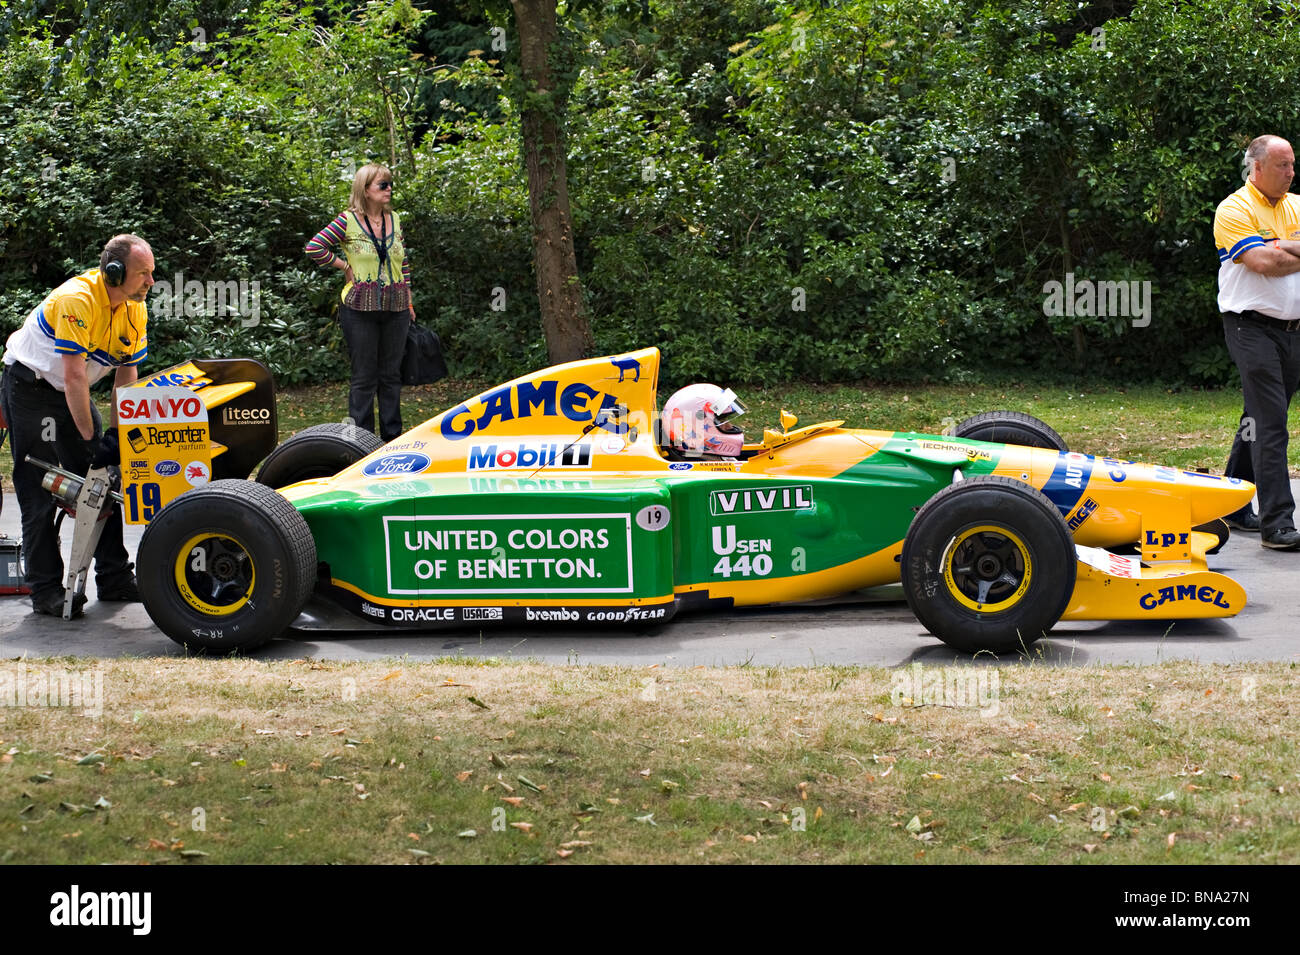 Benetton Ford B192 Formula One Racing Car at Goodwood Festival of Speed West Sussex England United Kingdom UK - Stock Image